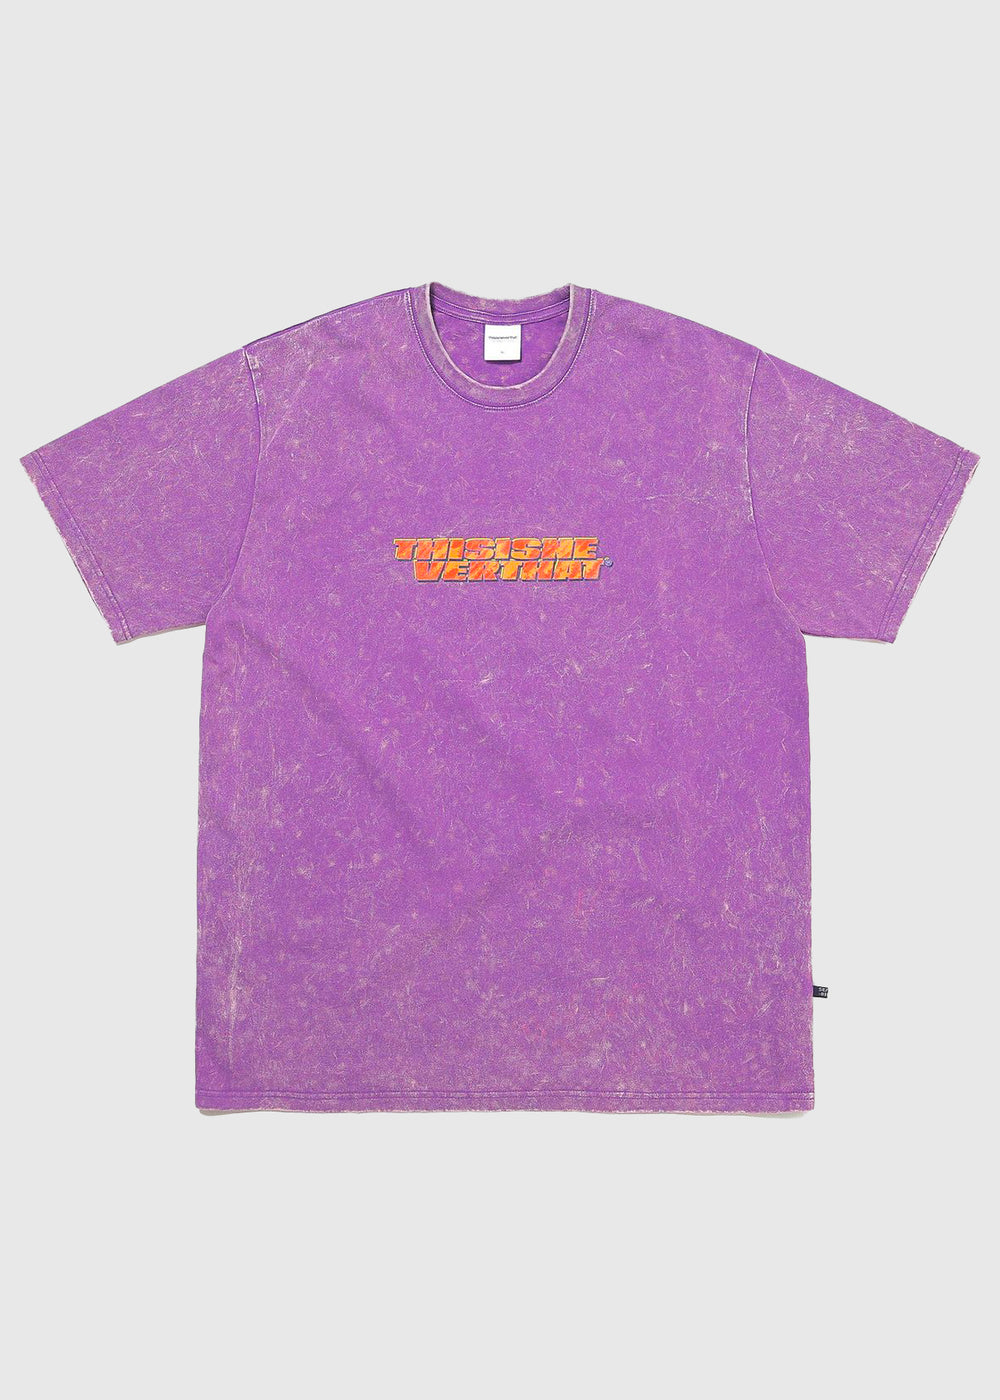 acid-washed-tee-tn20sts020-prp-prp-1